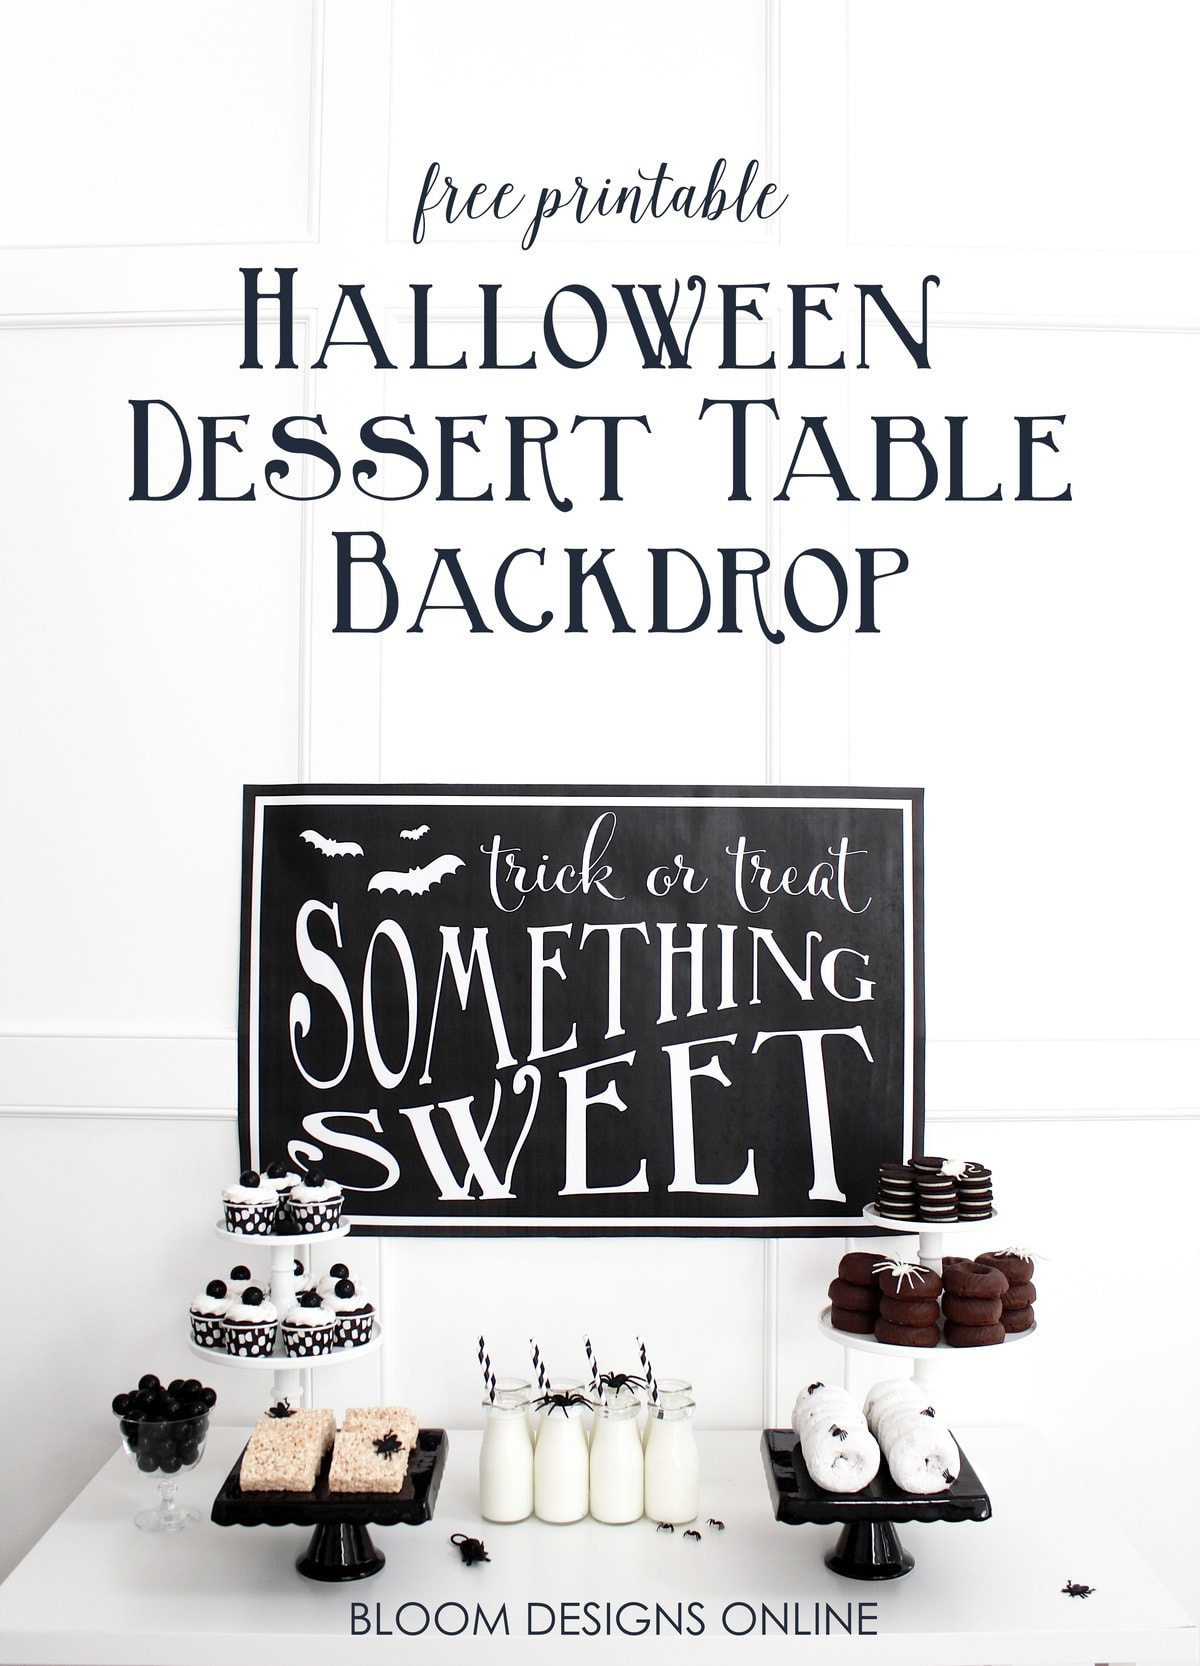 This Trick or Treat, Something Sweet sign makes an adorable but festive backdrop for any Halloween celebration, or use it just to make your home a little more festive!